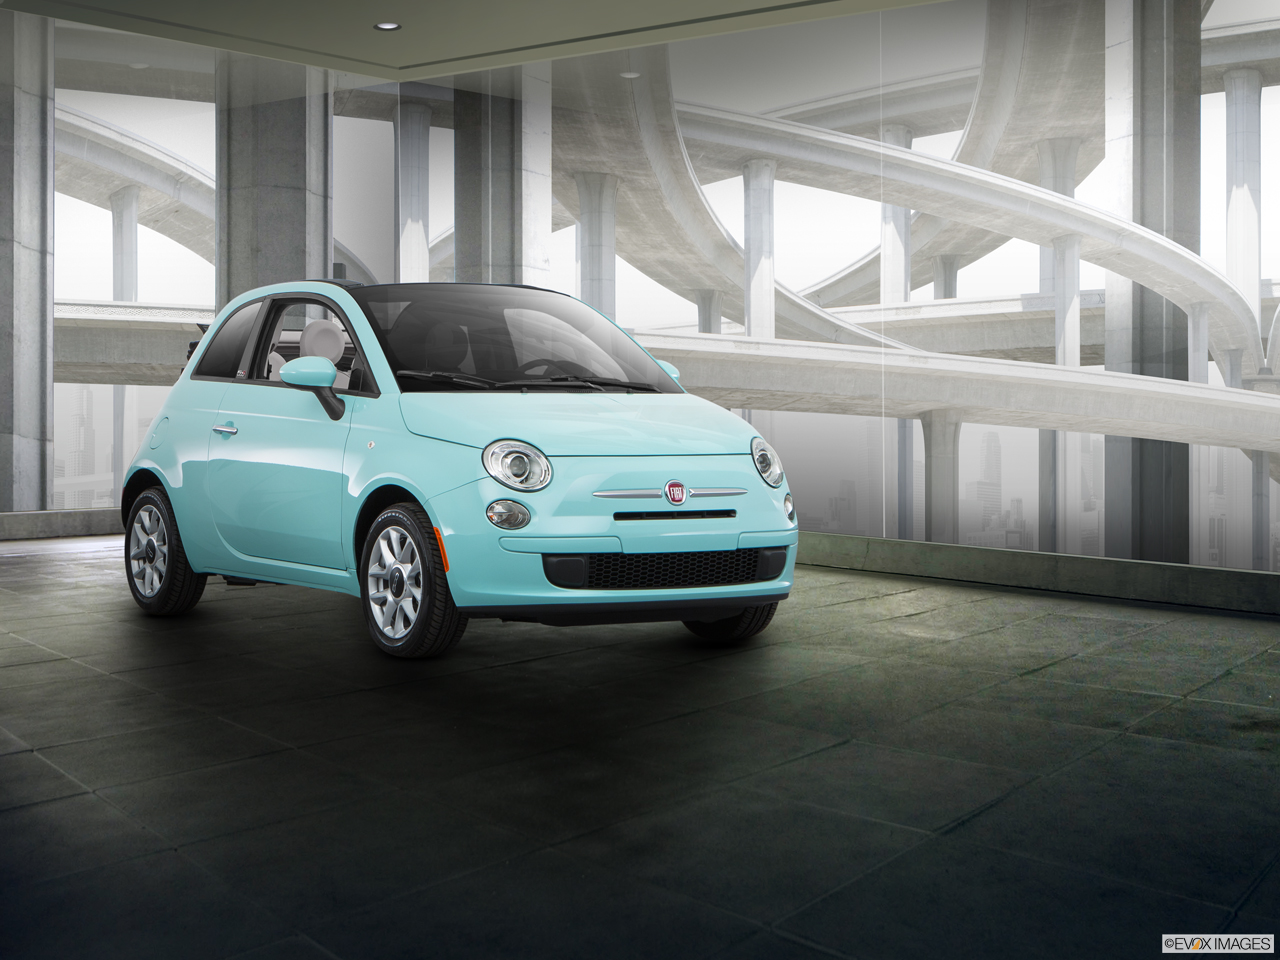 Exterior View Of 2016 Fiat 500C in Tamarac